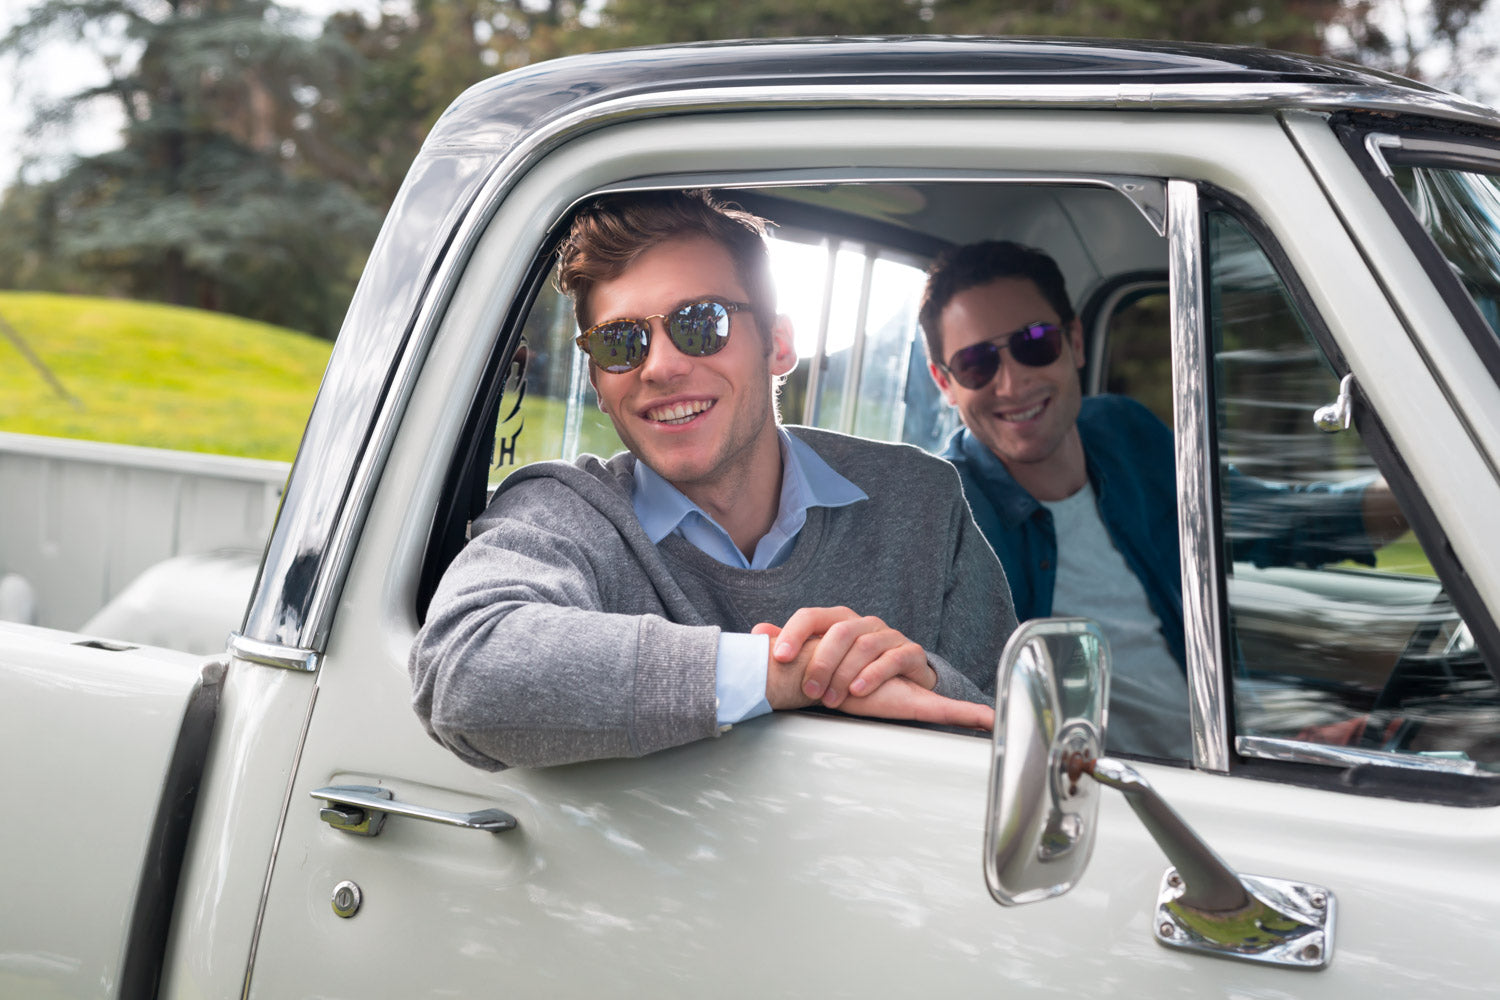 2 make models in a sitting in a vintage truck wearing sunglasses & smiling. They are parked in a park